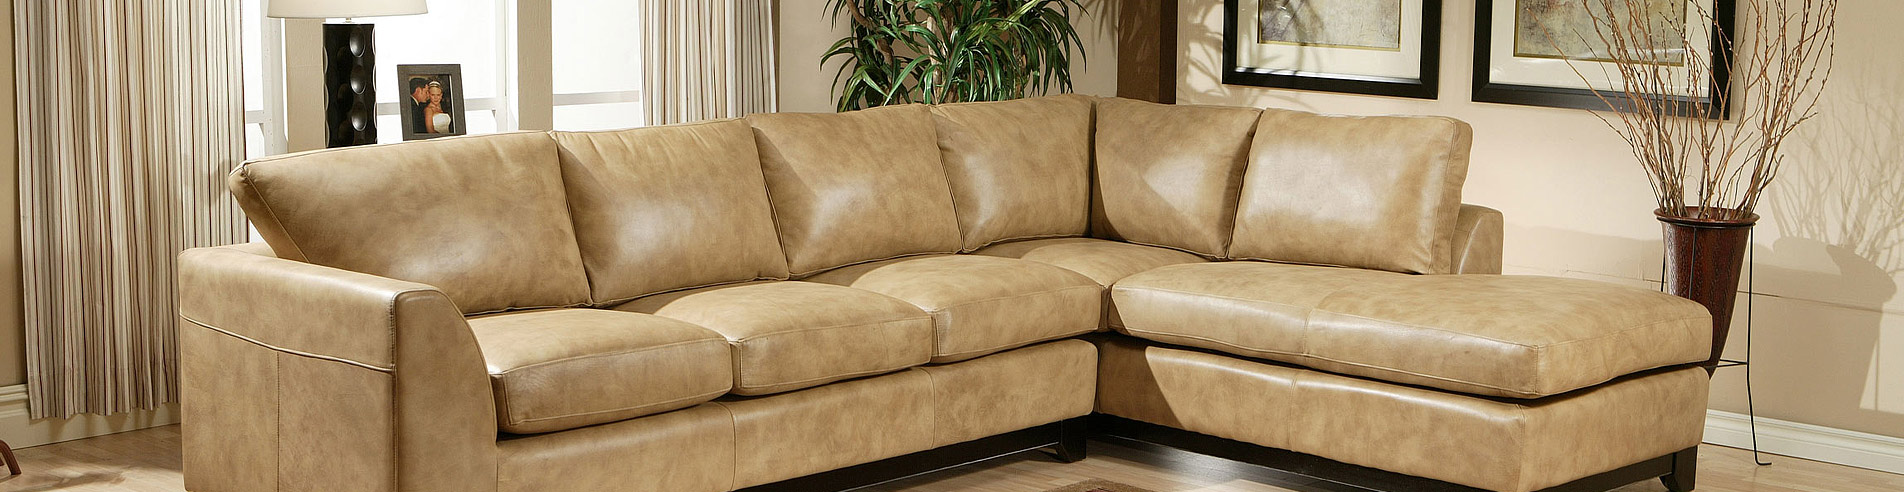 Sofa Express Locations Leather Express Furniture Leather Furniture Leather Sofas